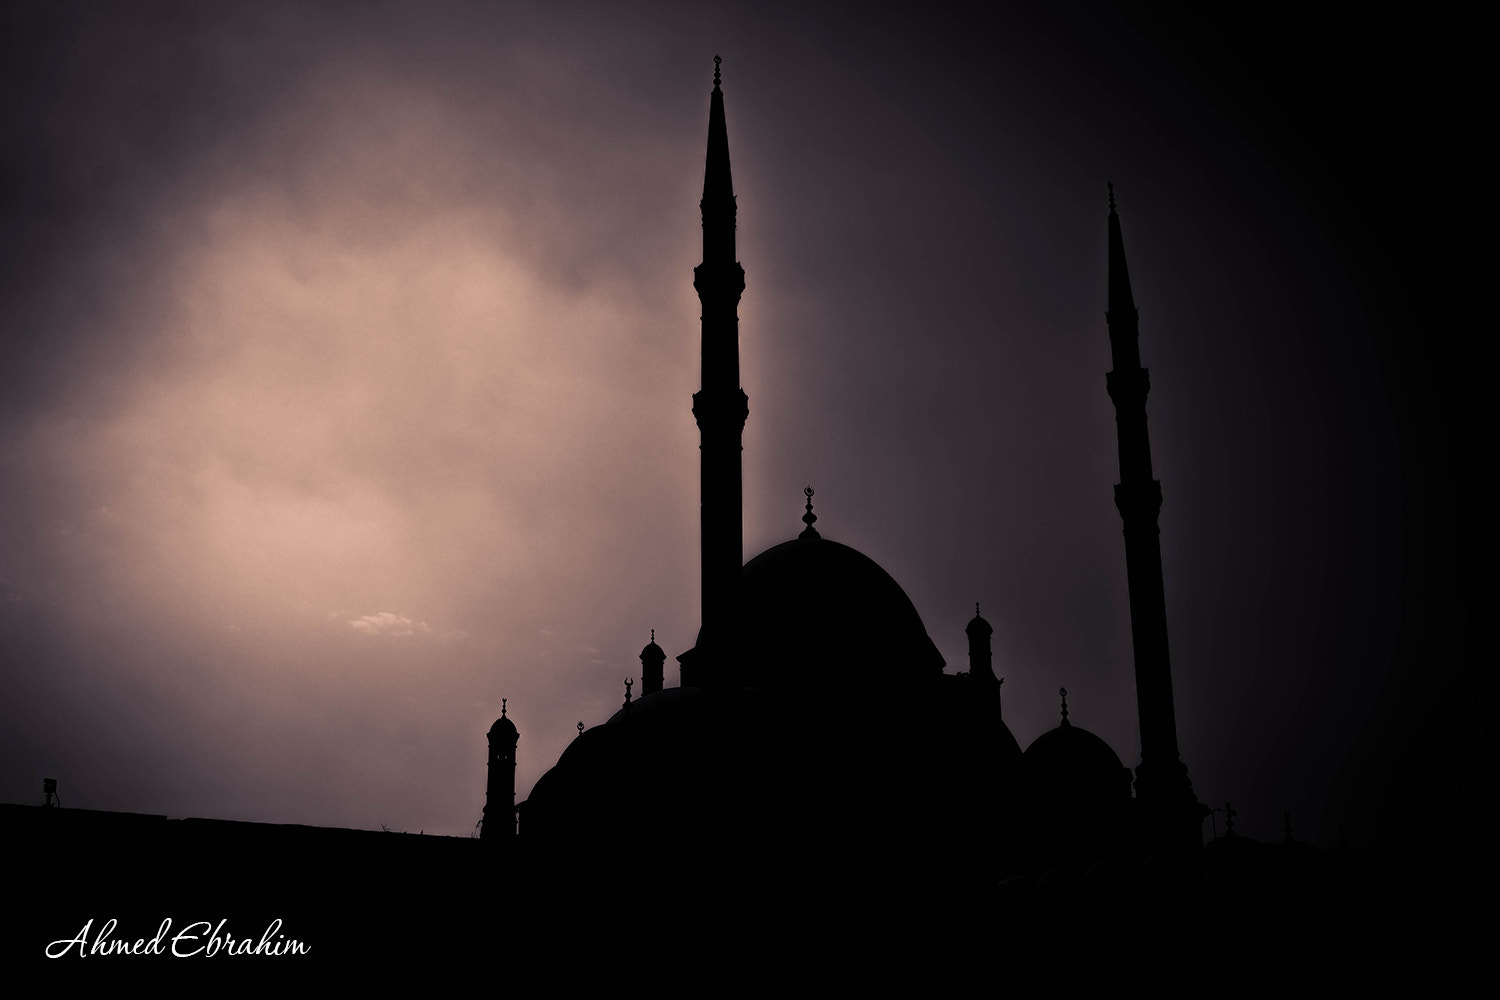 Photograph Citadel - silhouette by Ahmed Ebrahim on 500px